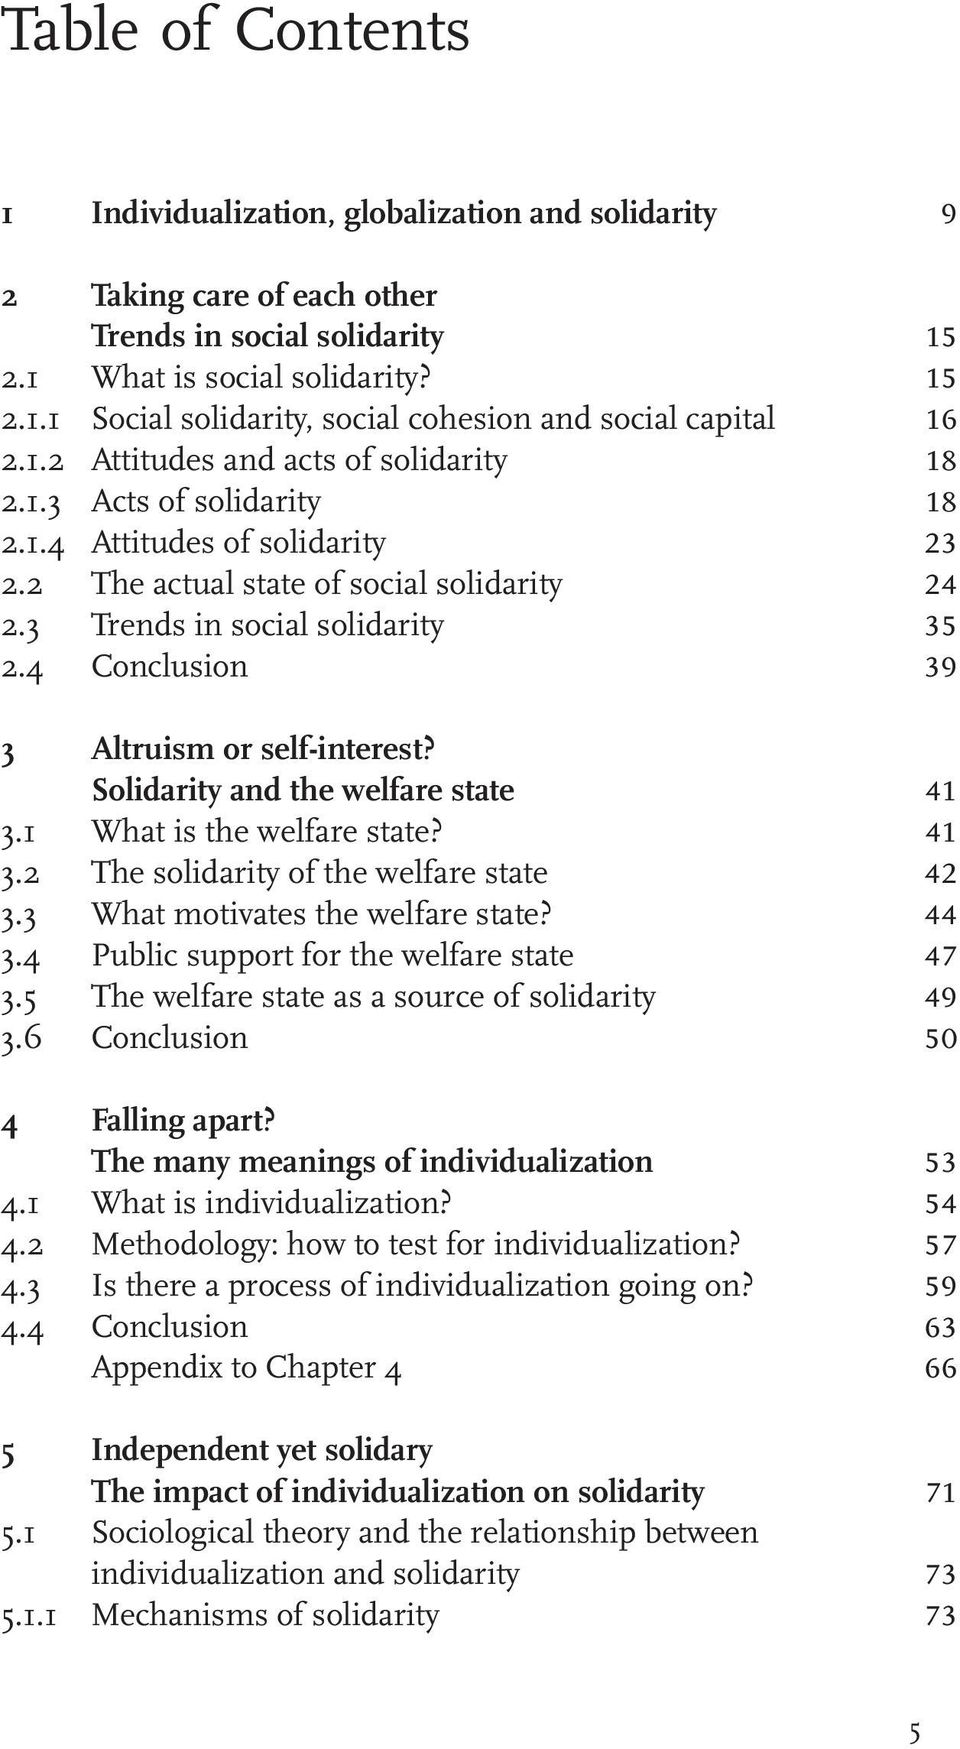 4 Conclusion 39 3 Altruism or self-interest? Solidarity and the welfare state 41 3.1 What is the welfare state? 41 3.2 The solidarity of the welfare state 42 3.3 What motivates the welfare state?